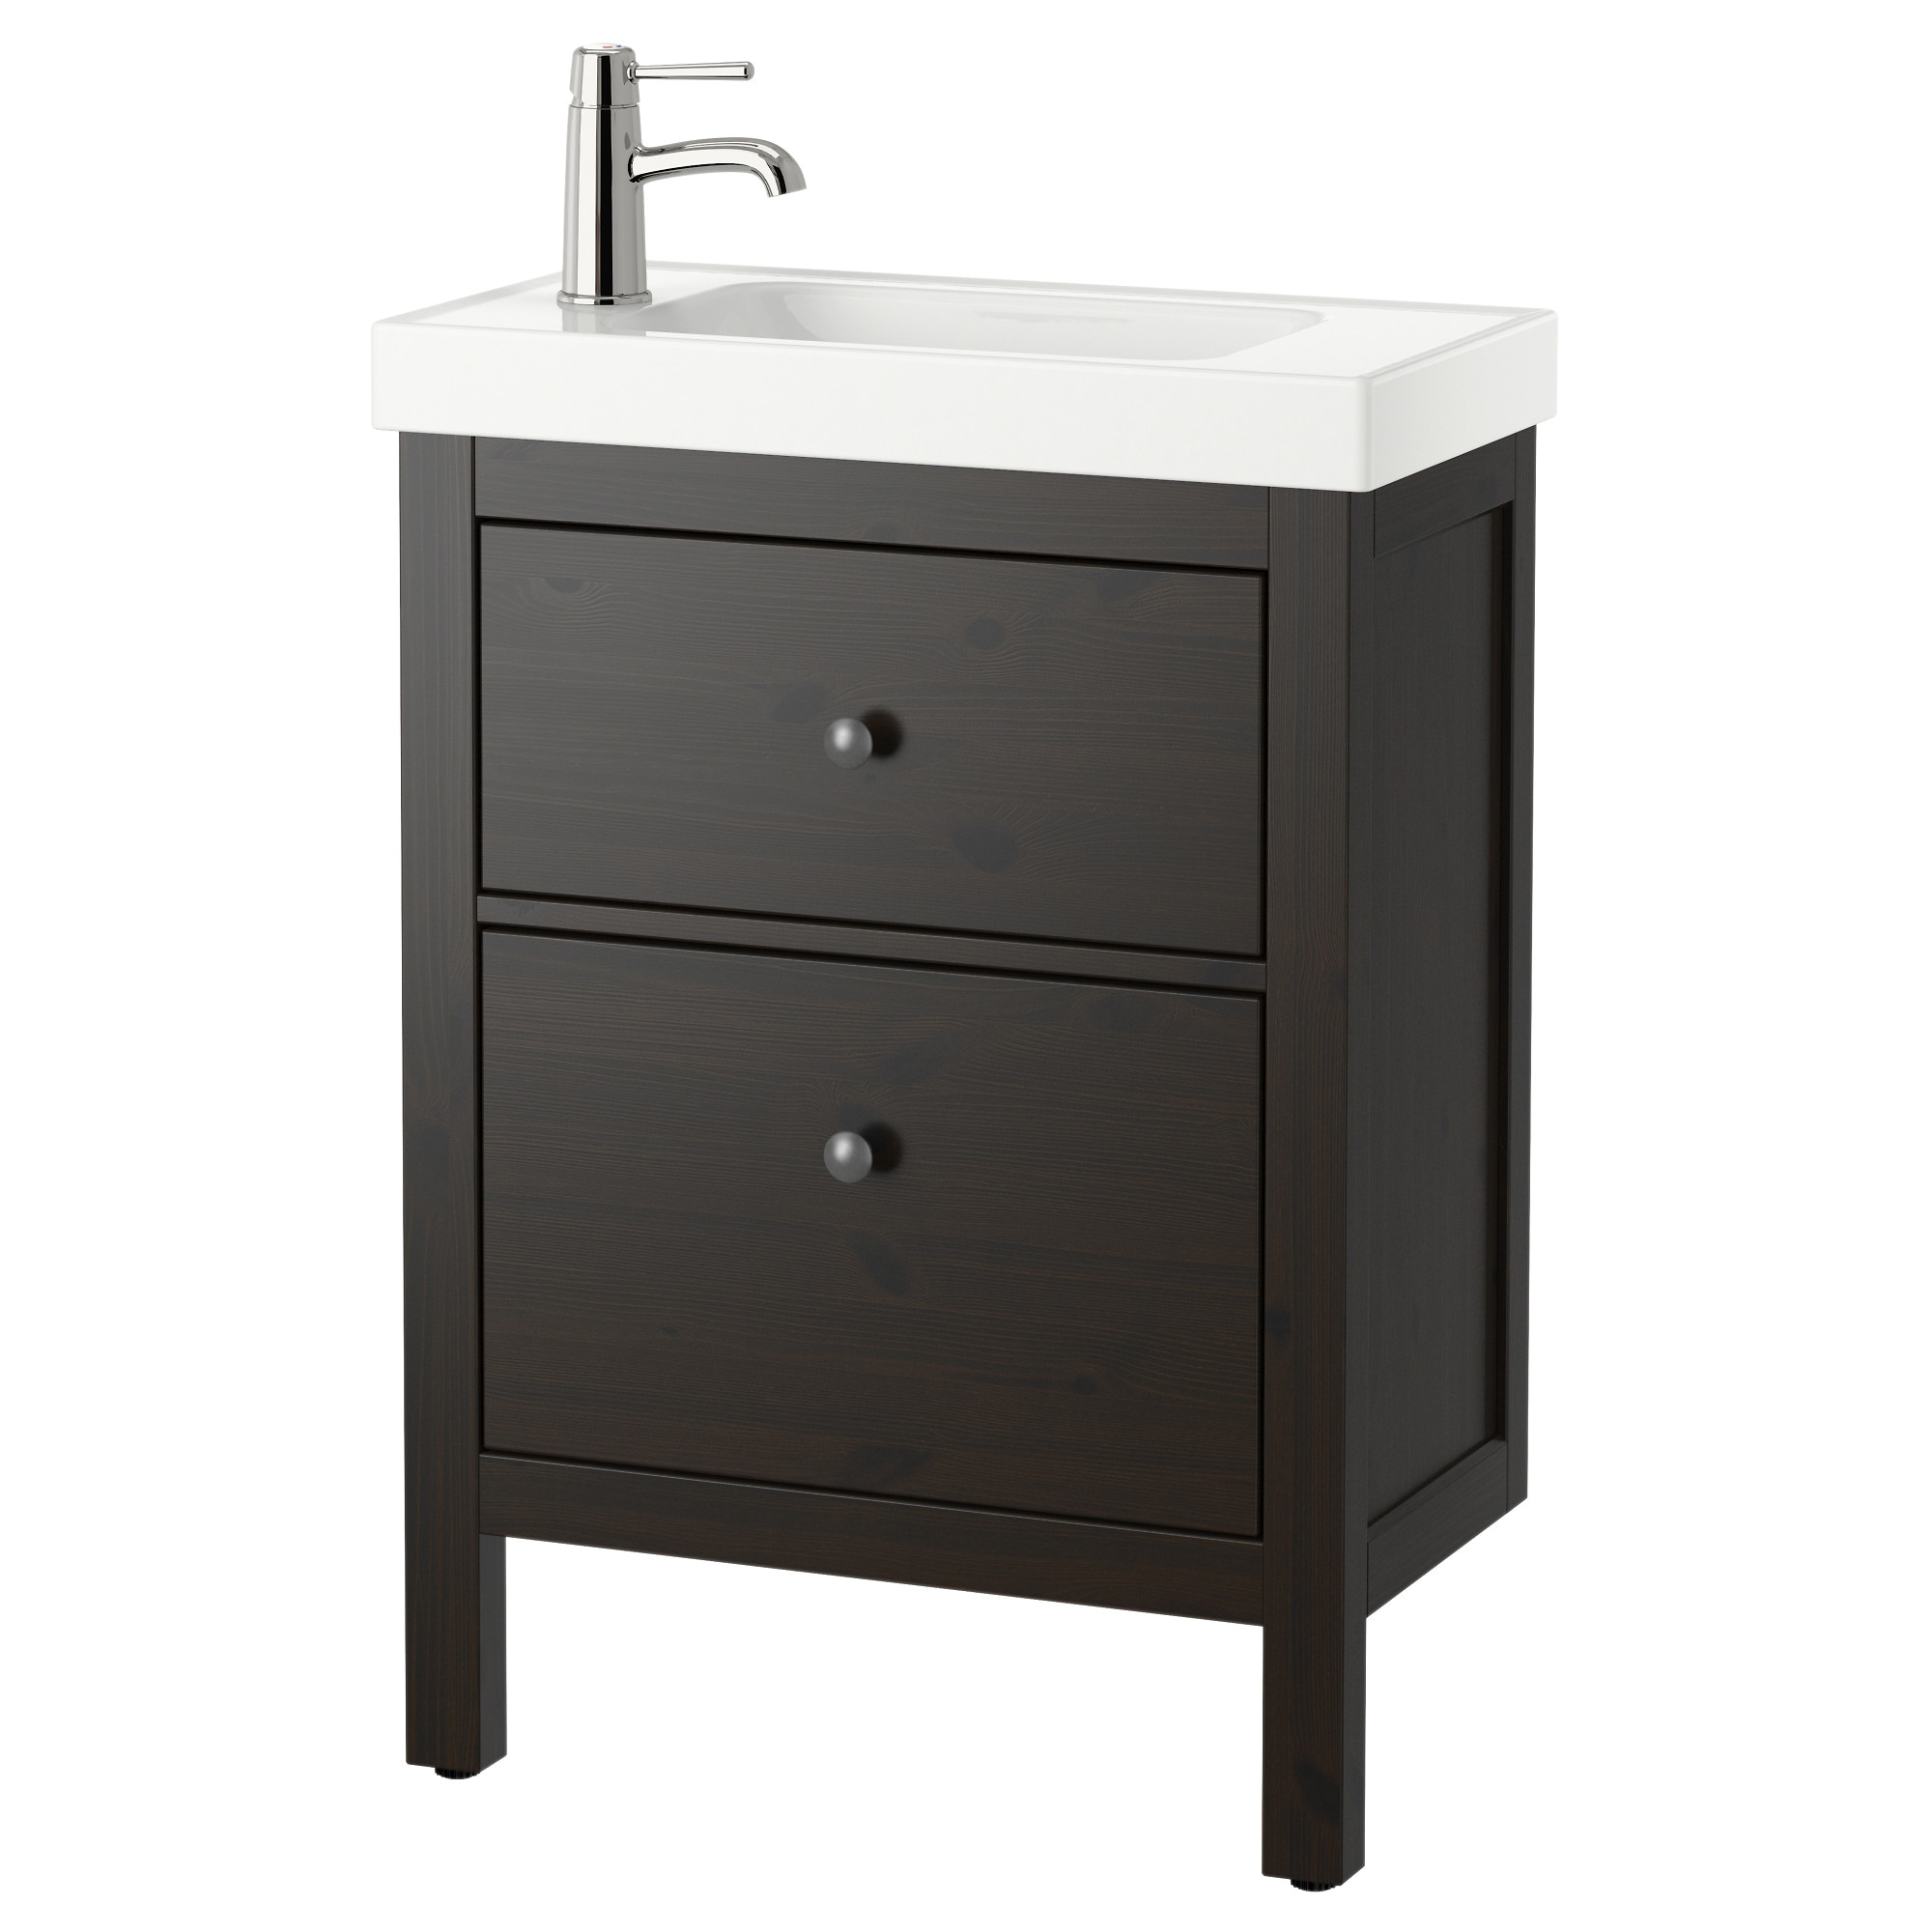 Sink Furniture Home Interiors Designs